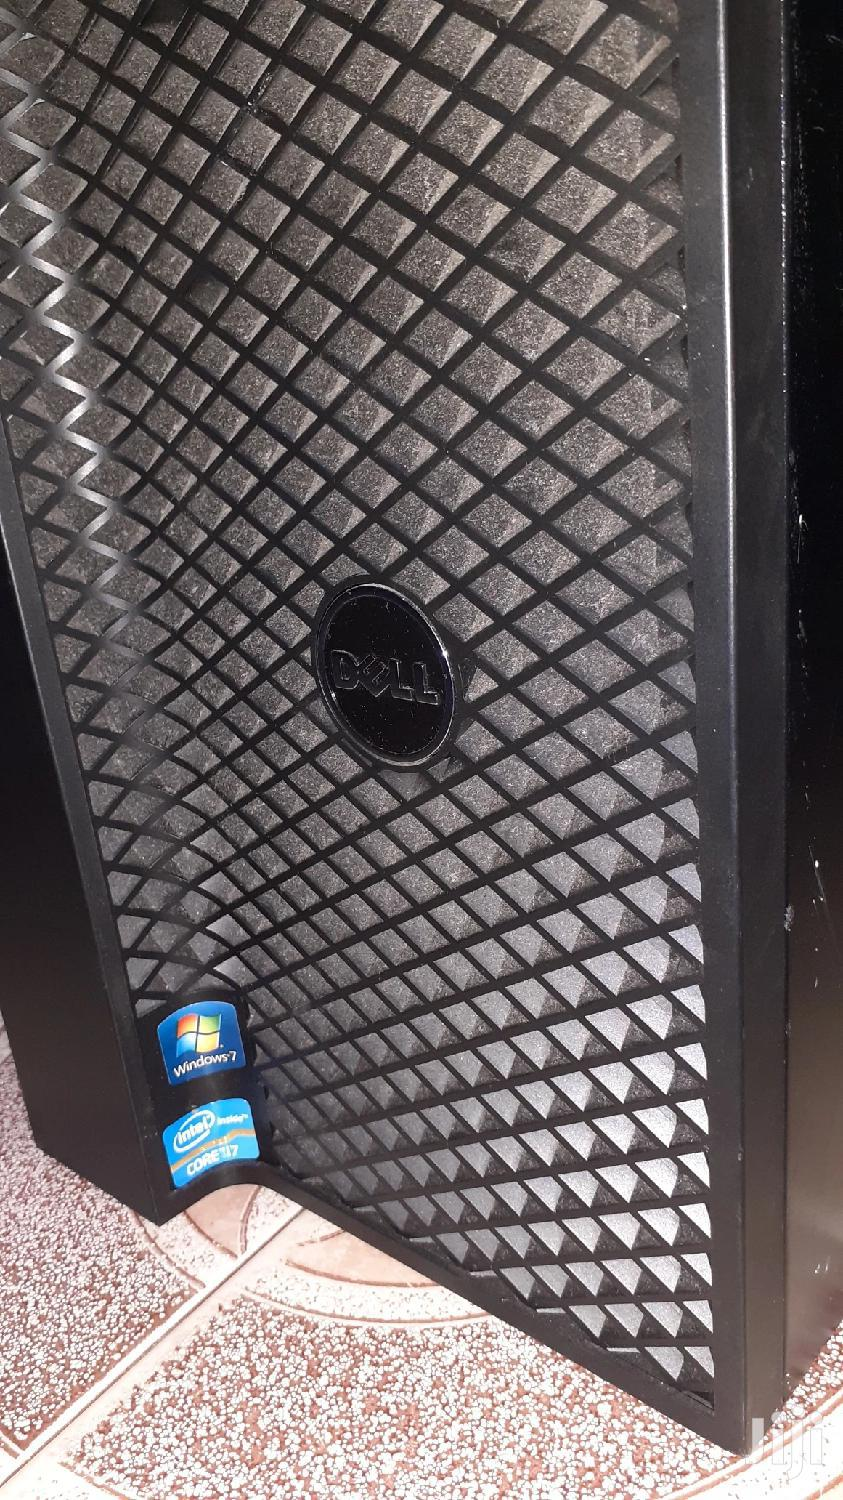 Desktop Computer Dell 16GB Intel Core i7 HDD 1T | Laptops & Computers for sale in Tema Metropolitan, Greater Accra, Ghana